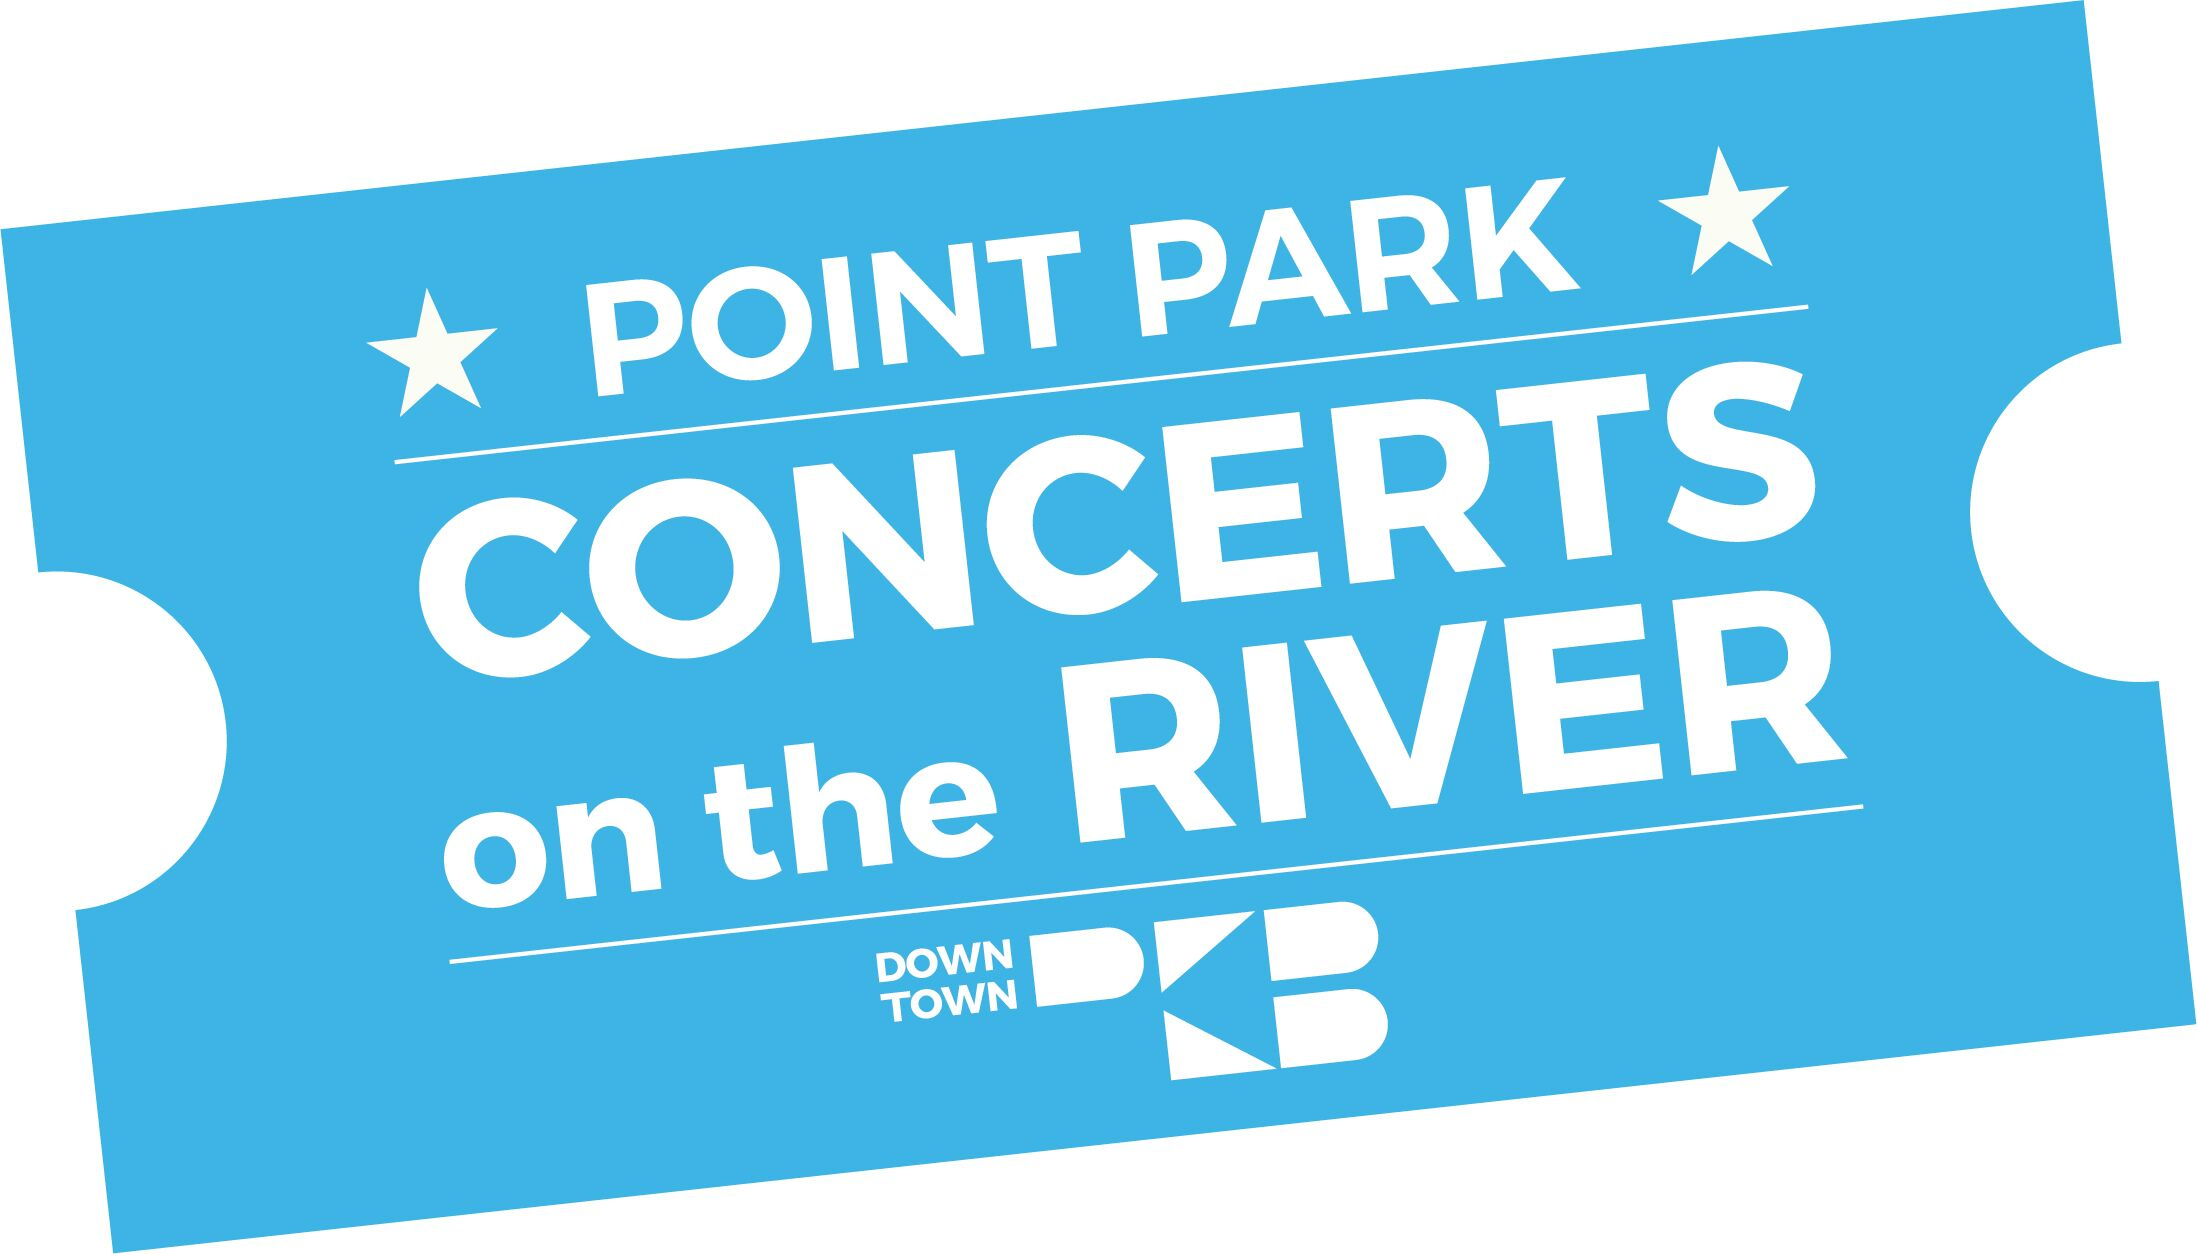 Point Park Concerts on the River.jpg